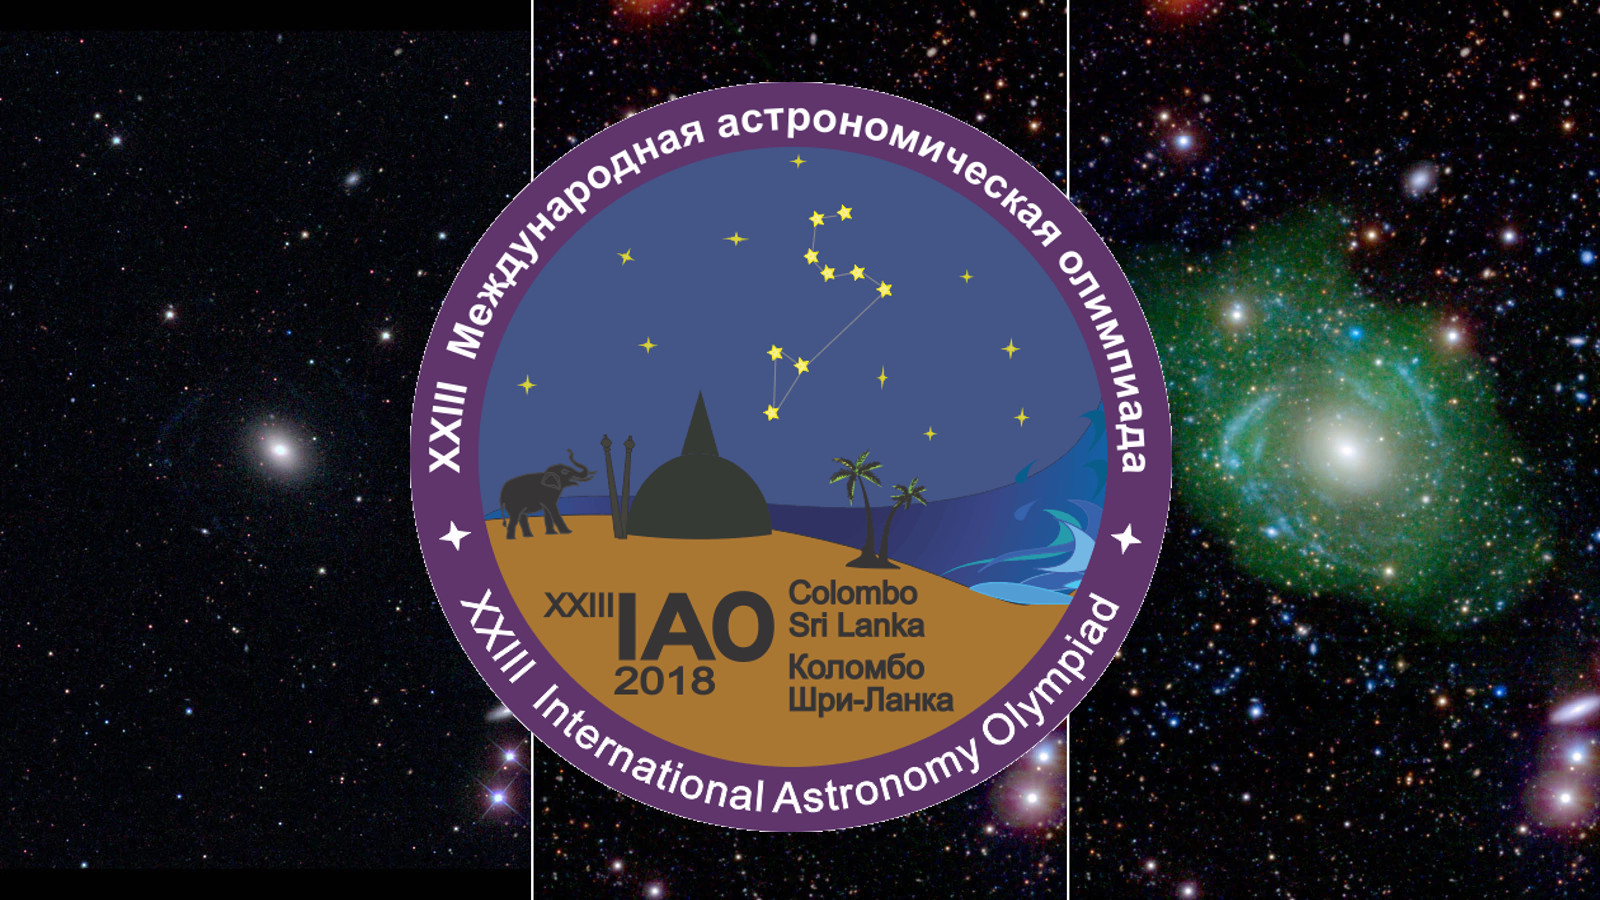 Astronomy Olympiad 2018 Colombo